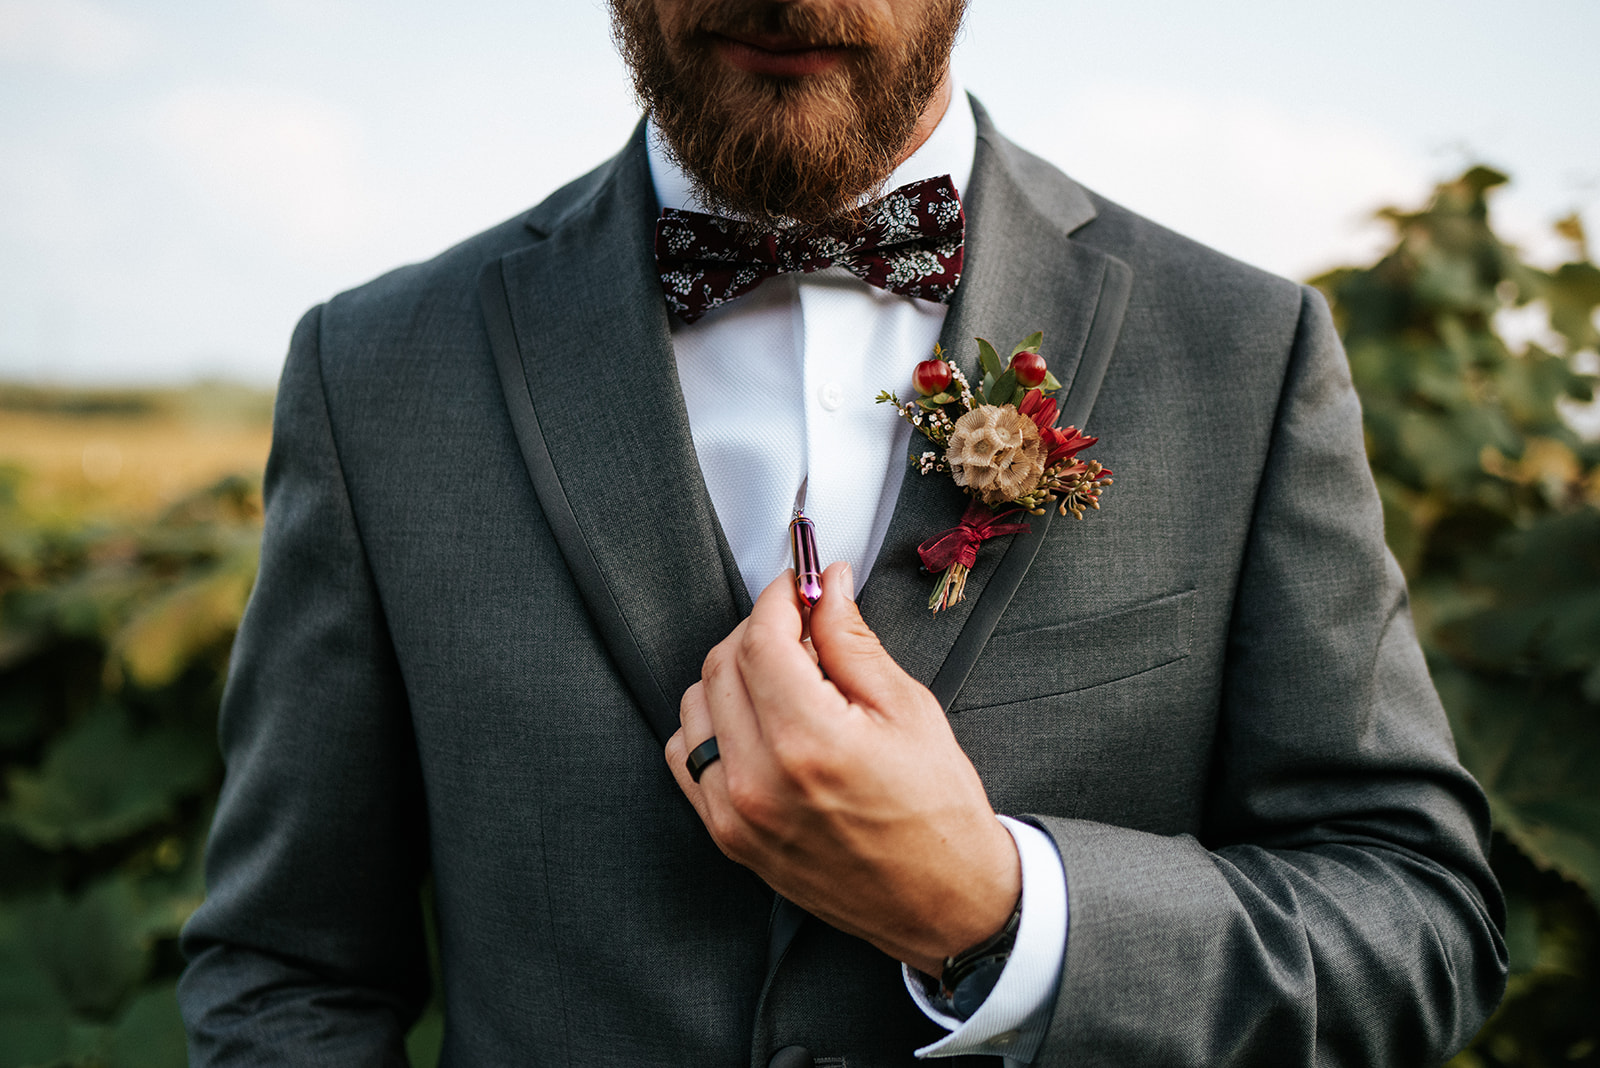 overthevineswisconsinwedding_0922.jpg